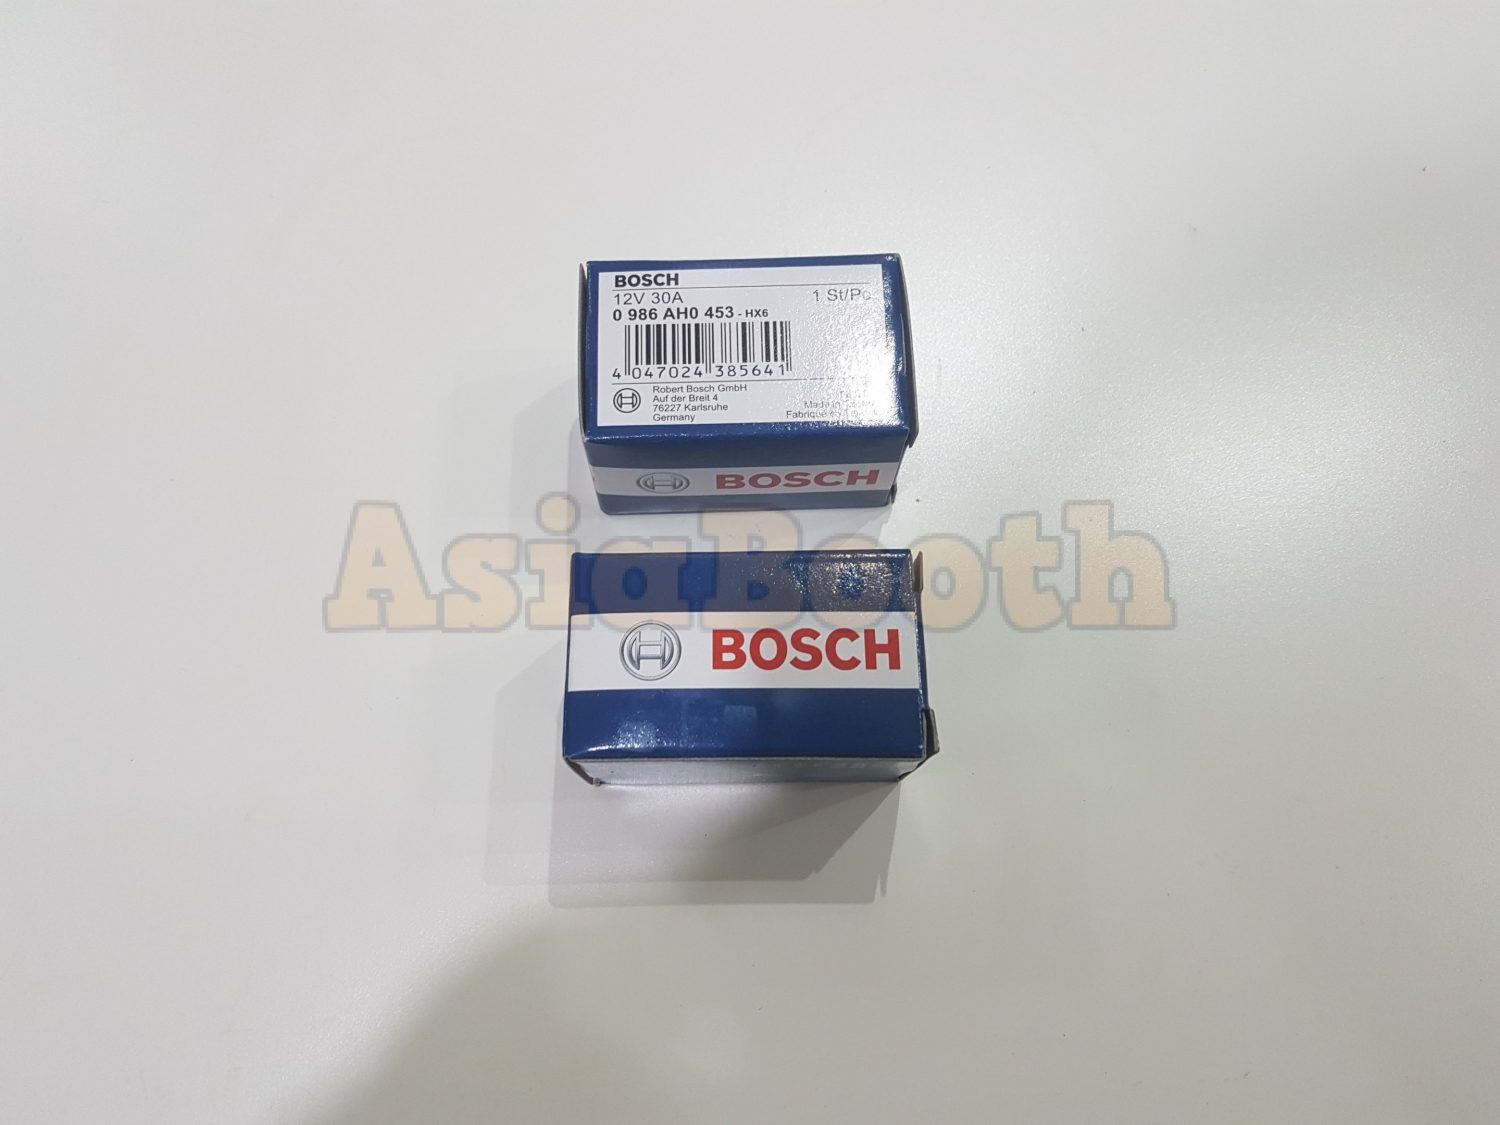 Bosch Relay 4 Pin 12v 30a Asia Booth 5 Universal 12 Volt 0986ah0453 Boxes